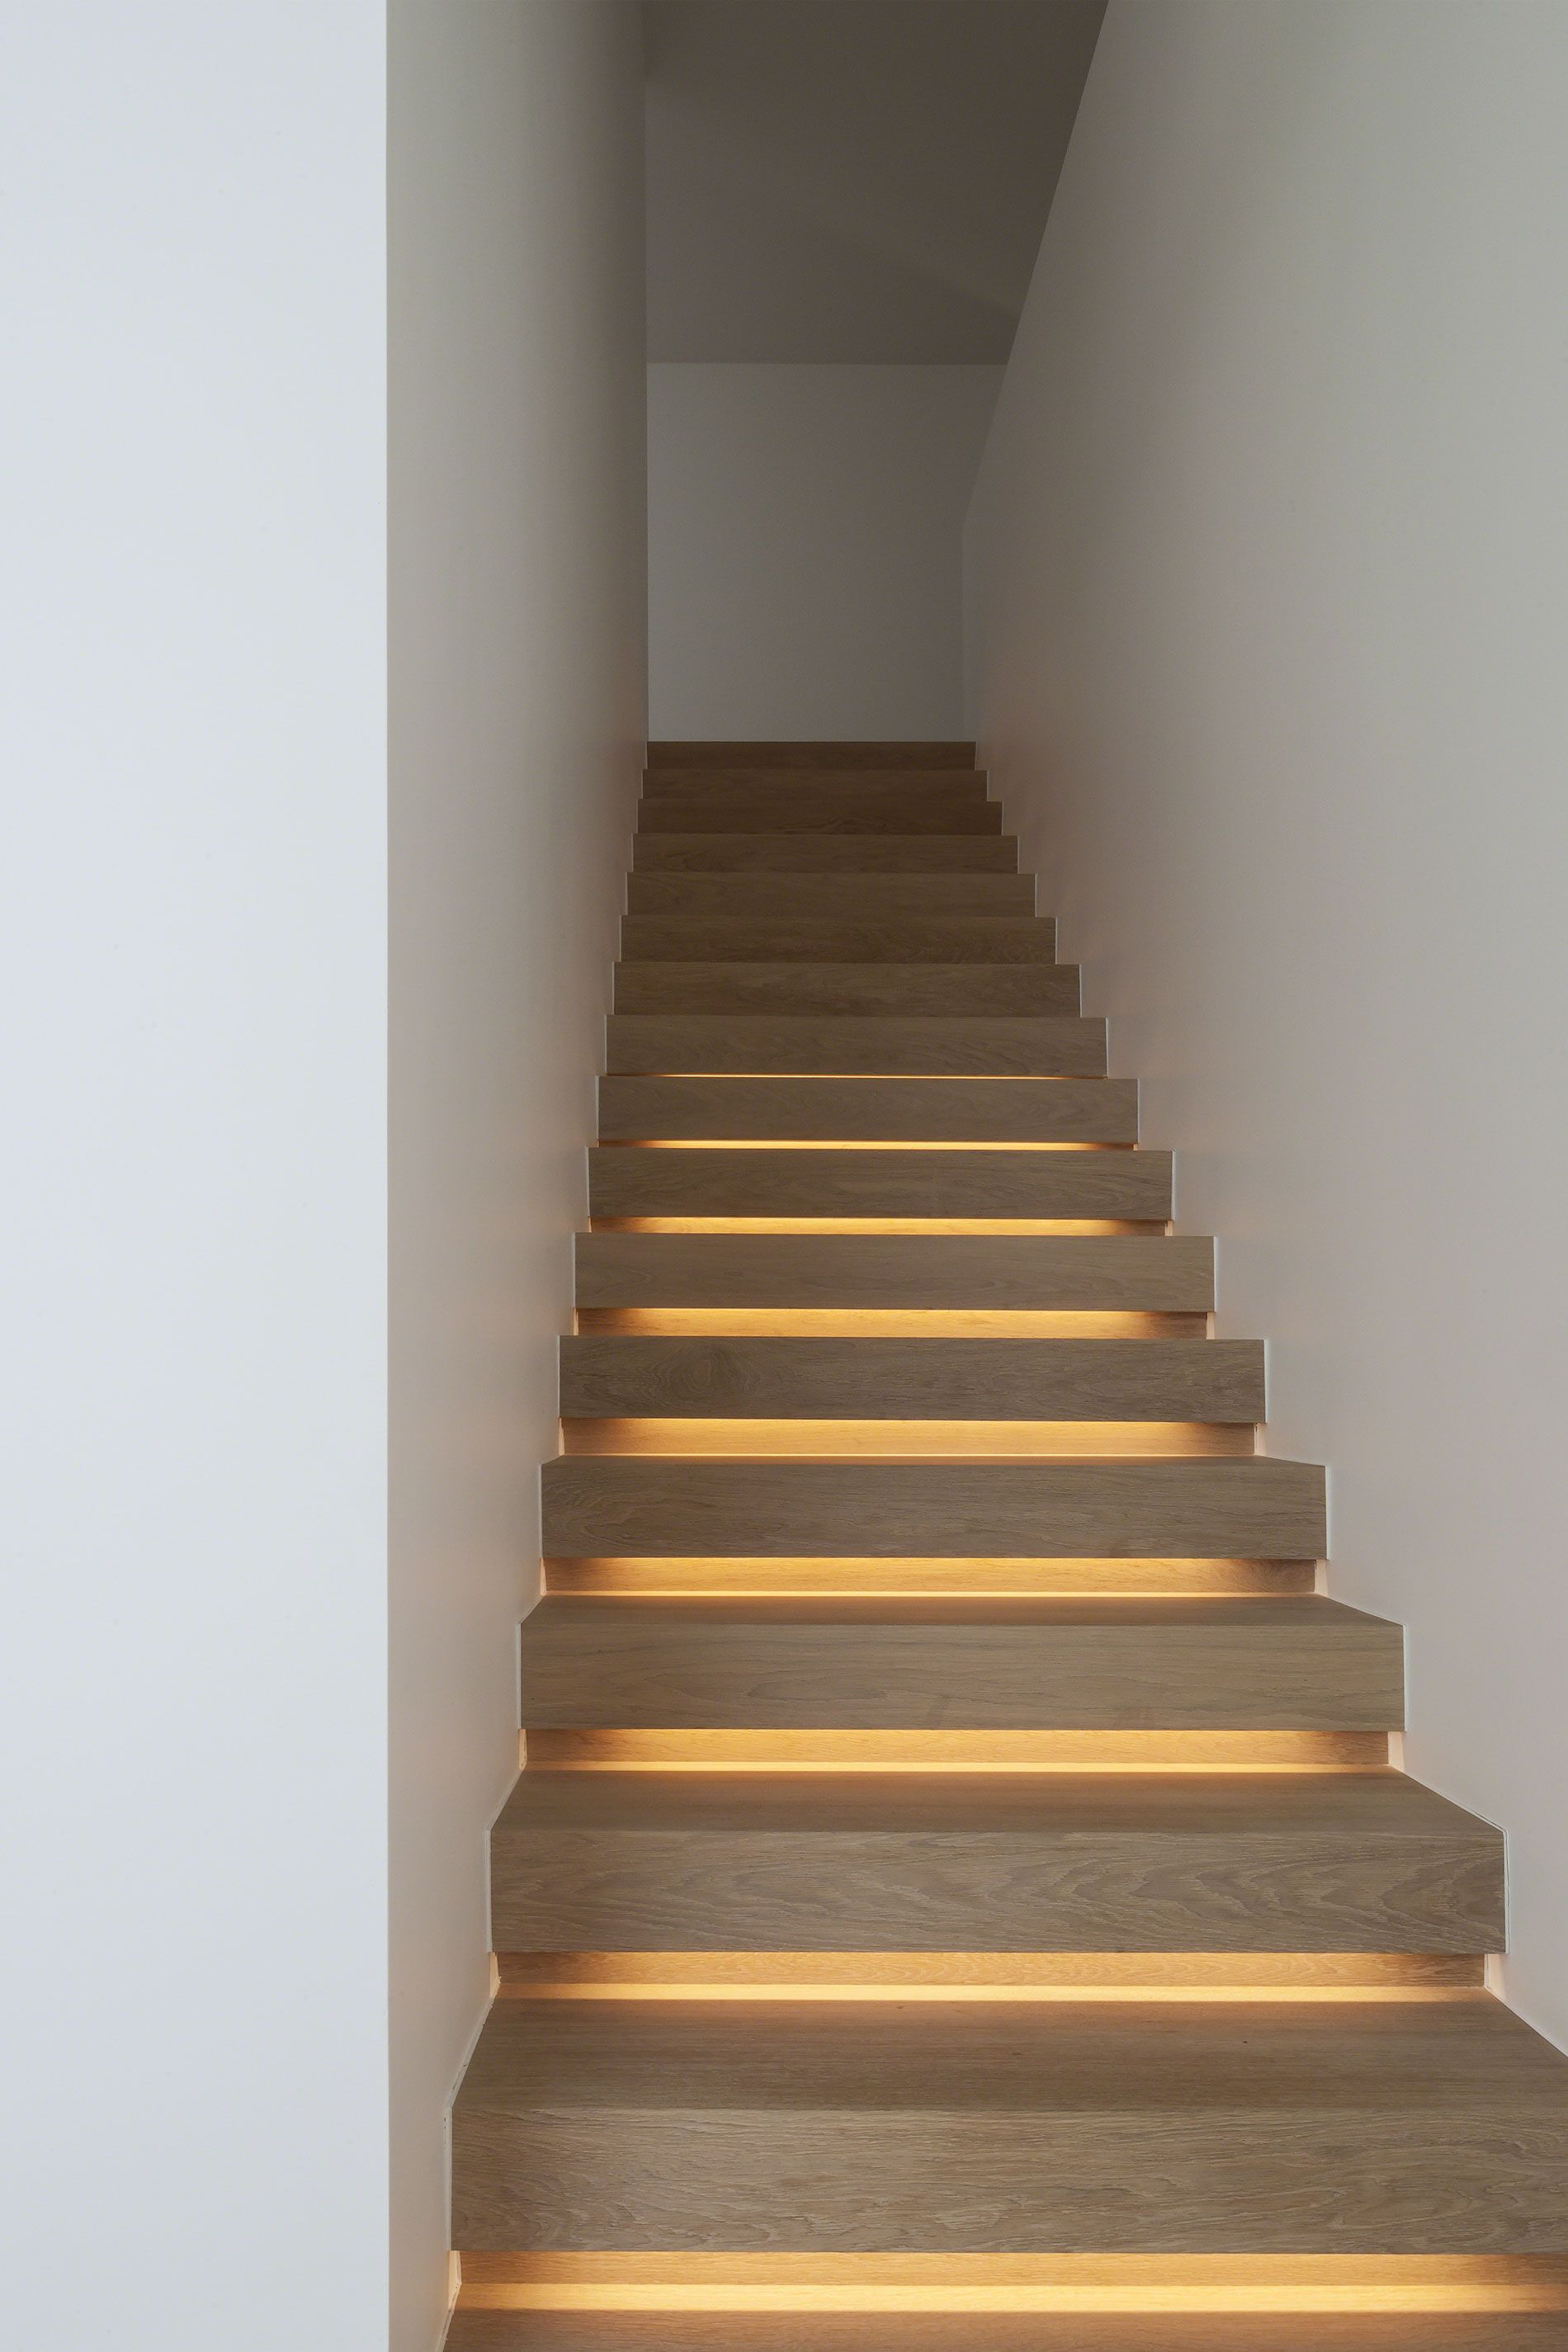 Hs Residence By Cubyc Architects 19 Homedsgn Stair Lights Modern Staircase Hidden Lighting